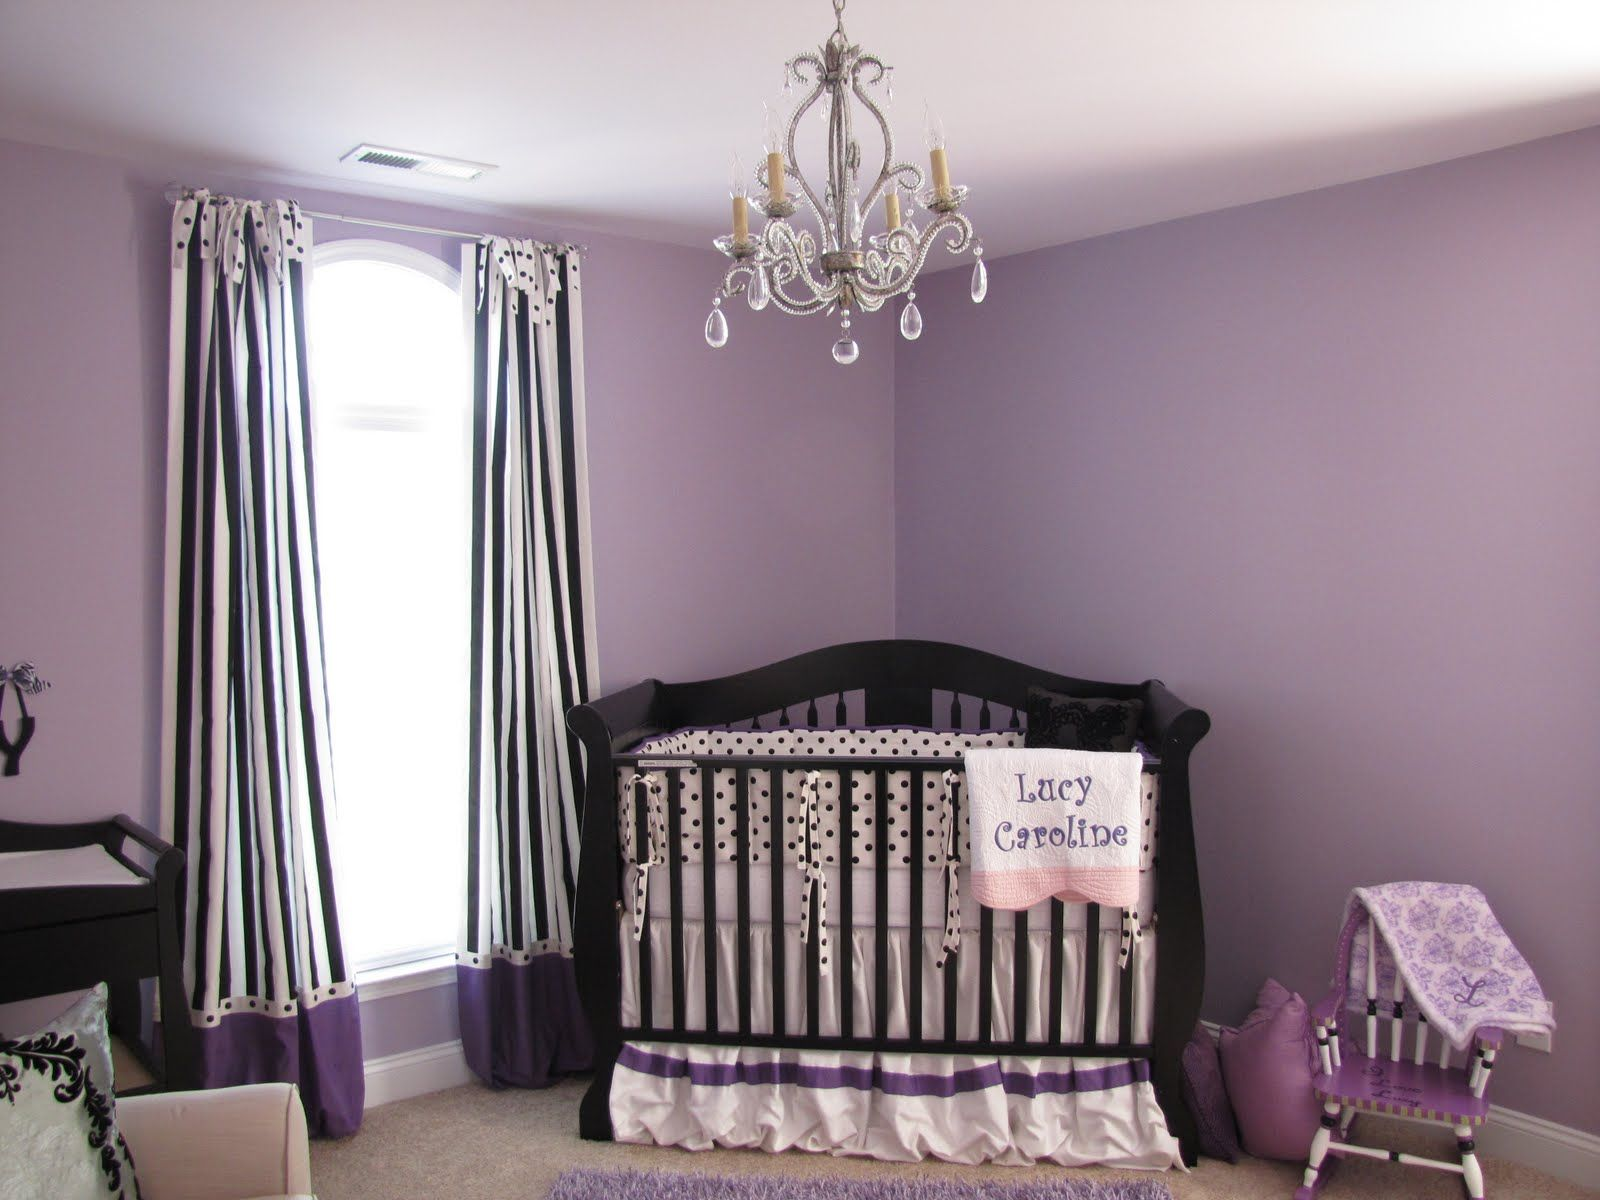 Simple Nursery Chandeliers For Baby Room Ceiling .